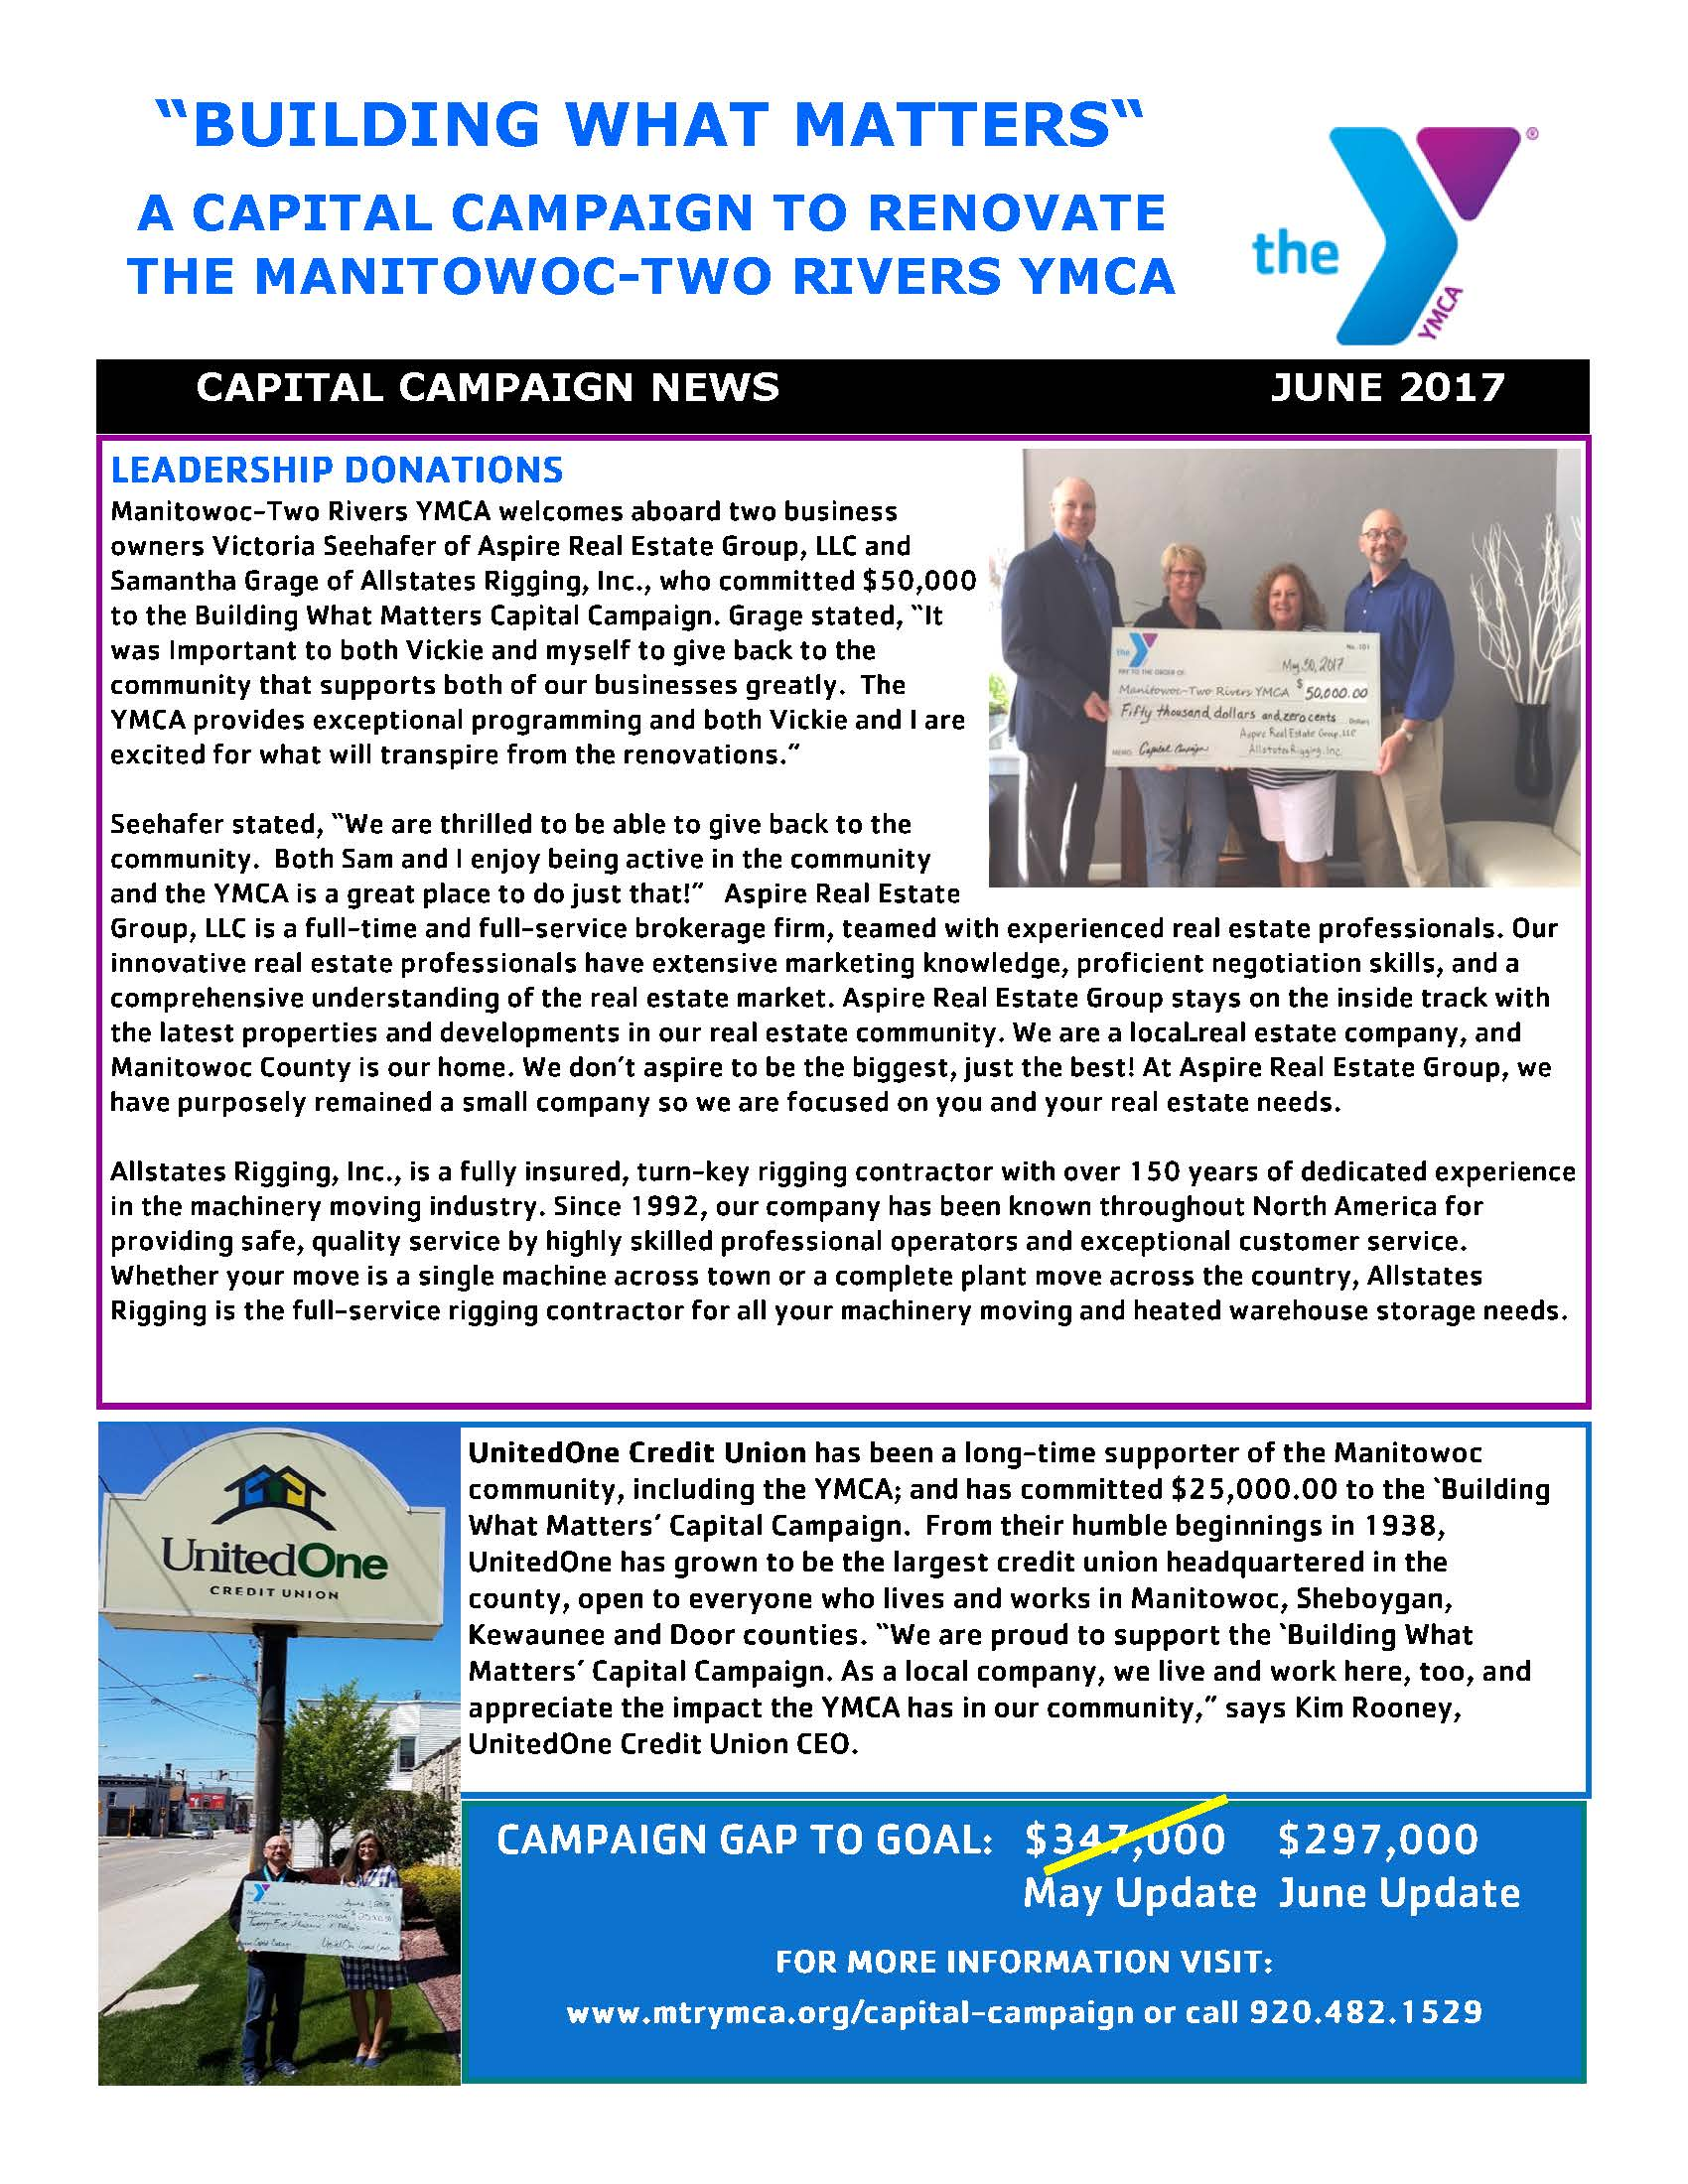 http://mtrymca.org/sites/mtrymca.org/assets/images/default/MTR-YMCA-Capital-Campaign-Newsletter-June-2017_Page_1.jpg